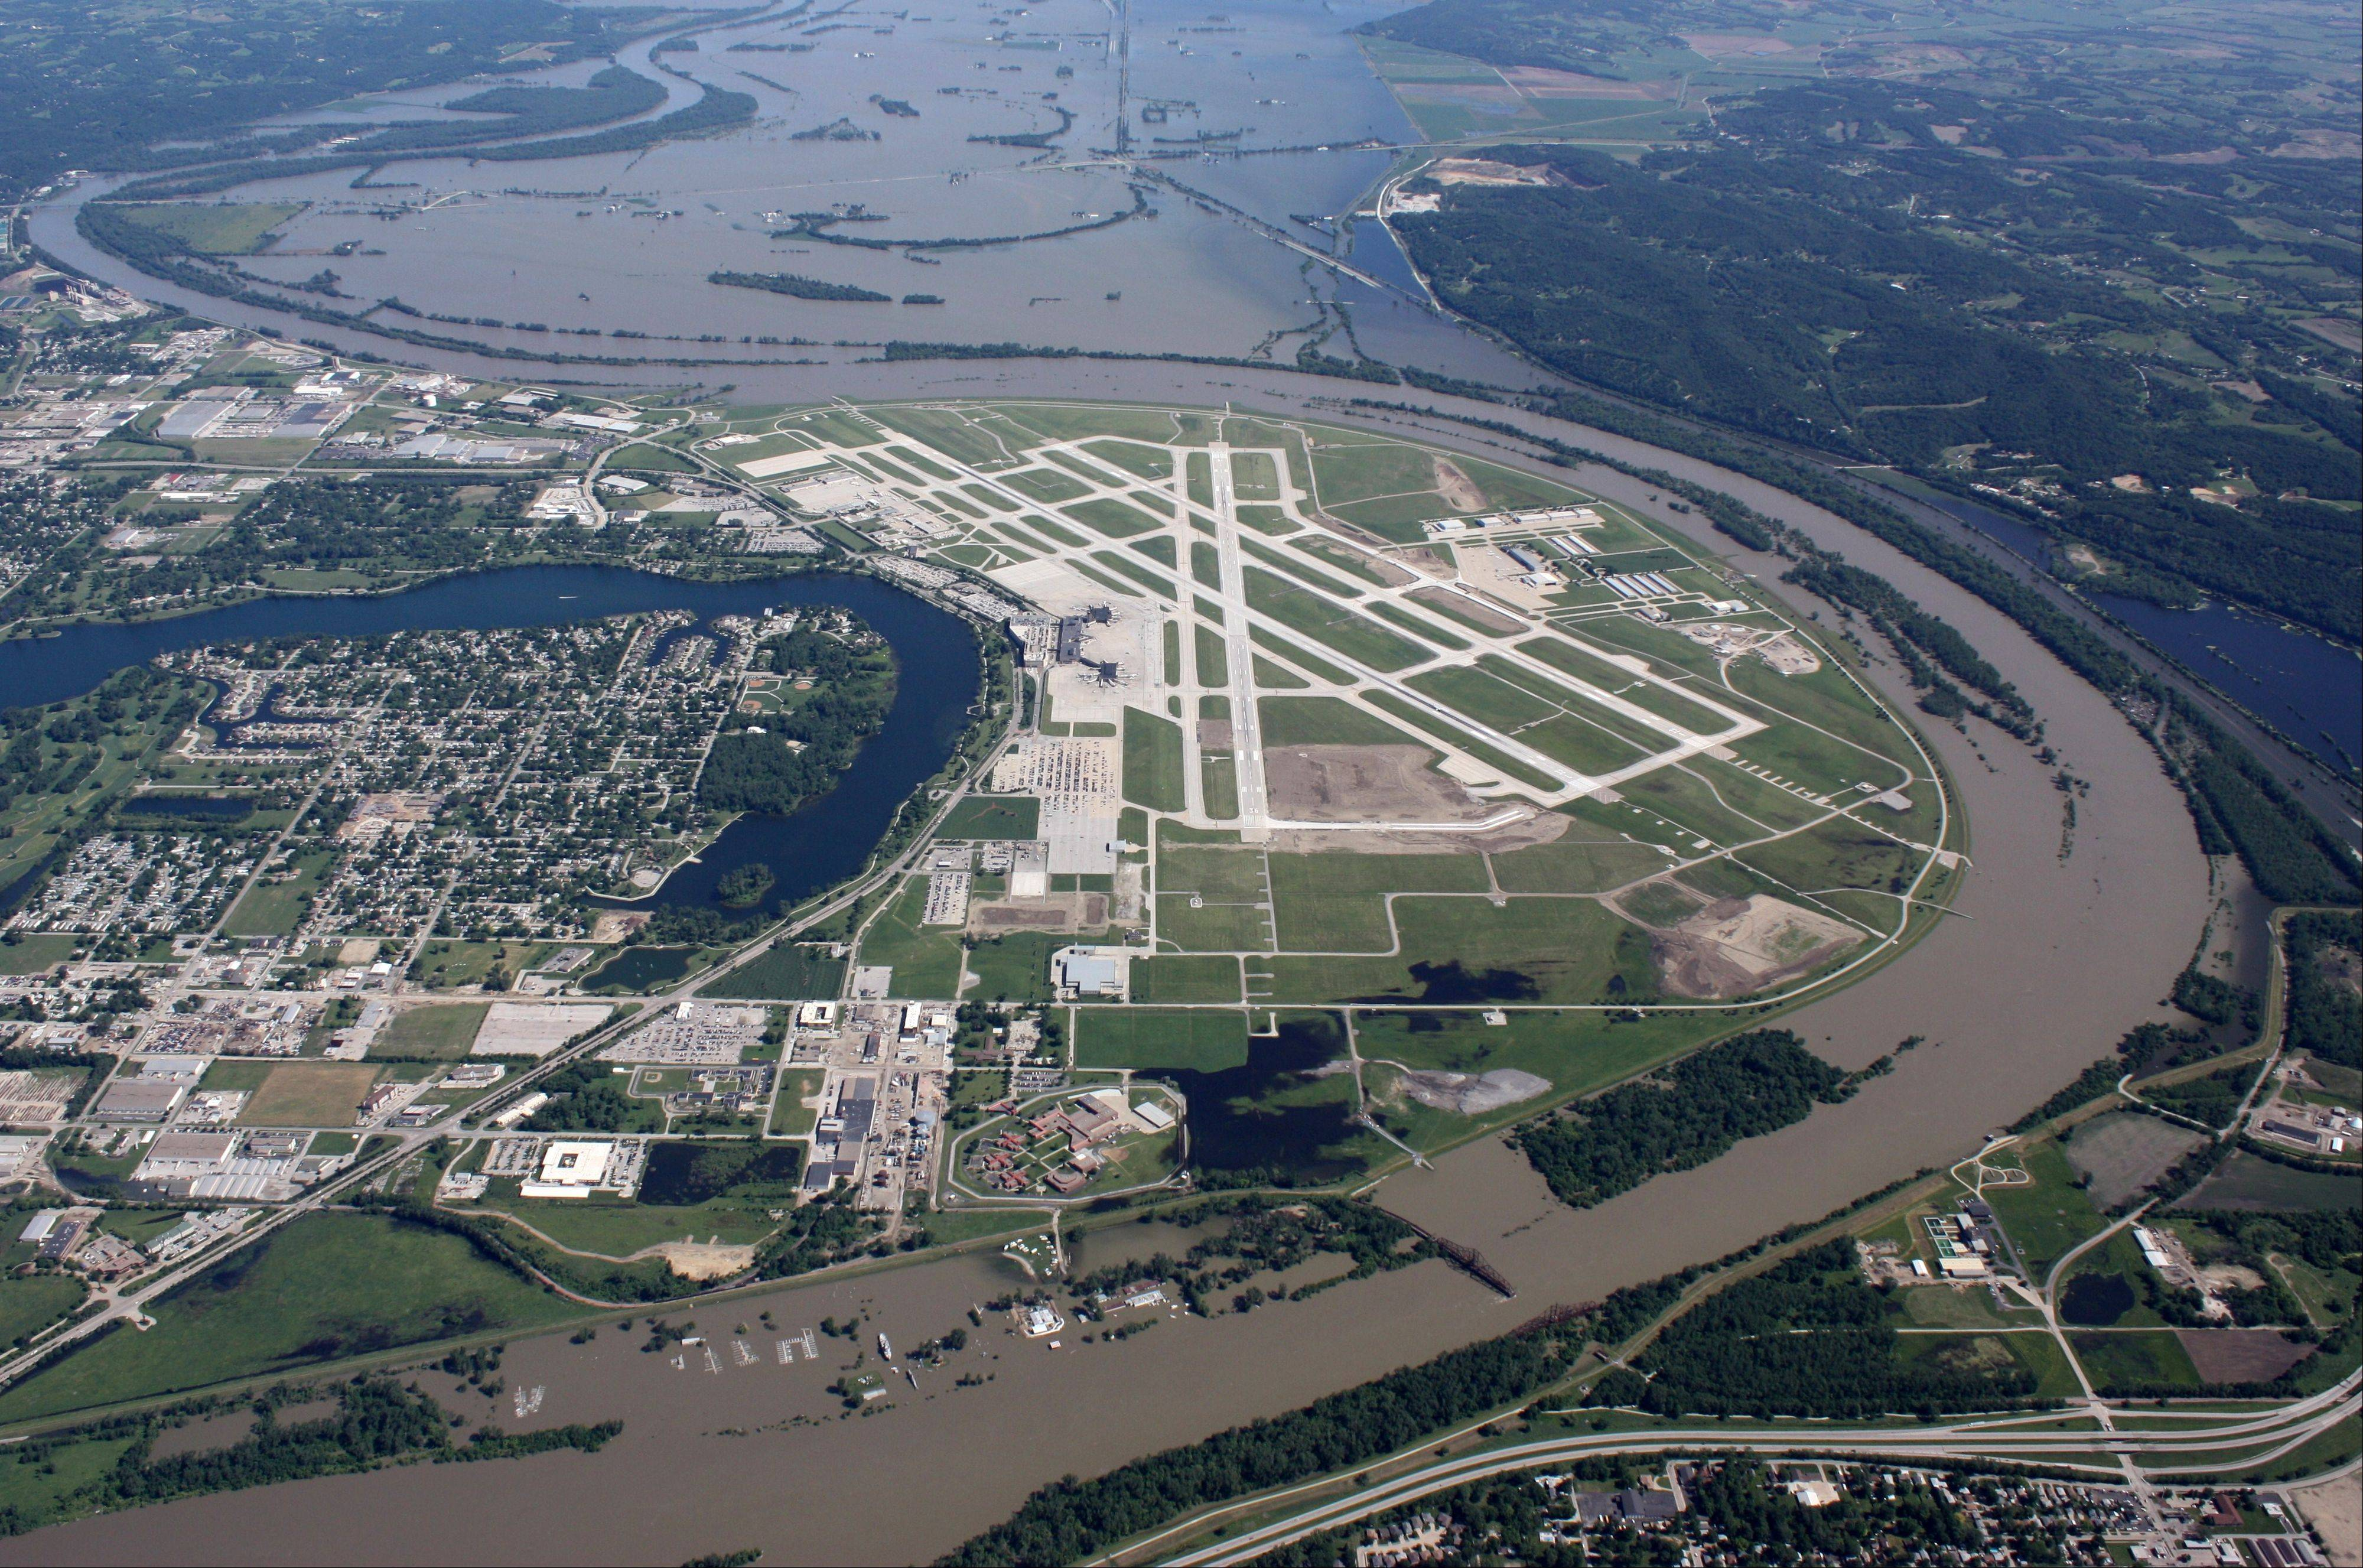 Extreme weather isn't isolated to the coasts. Here flooding is seen threatening the Omaha Airport in Nebraska in June 2011.